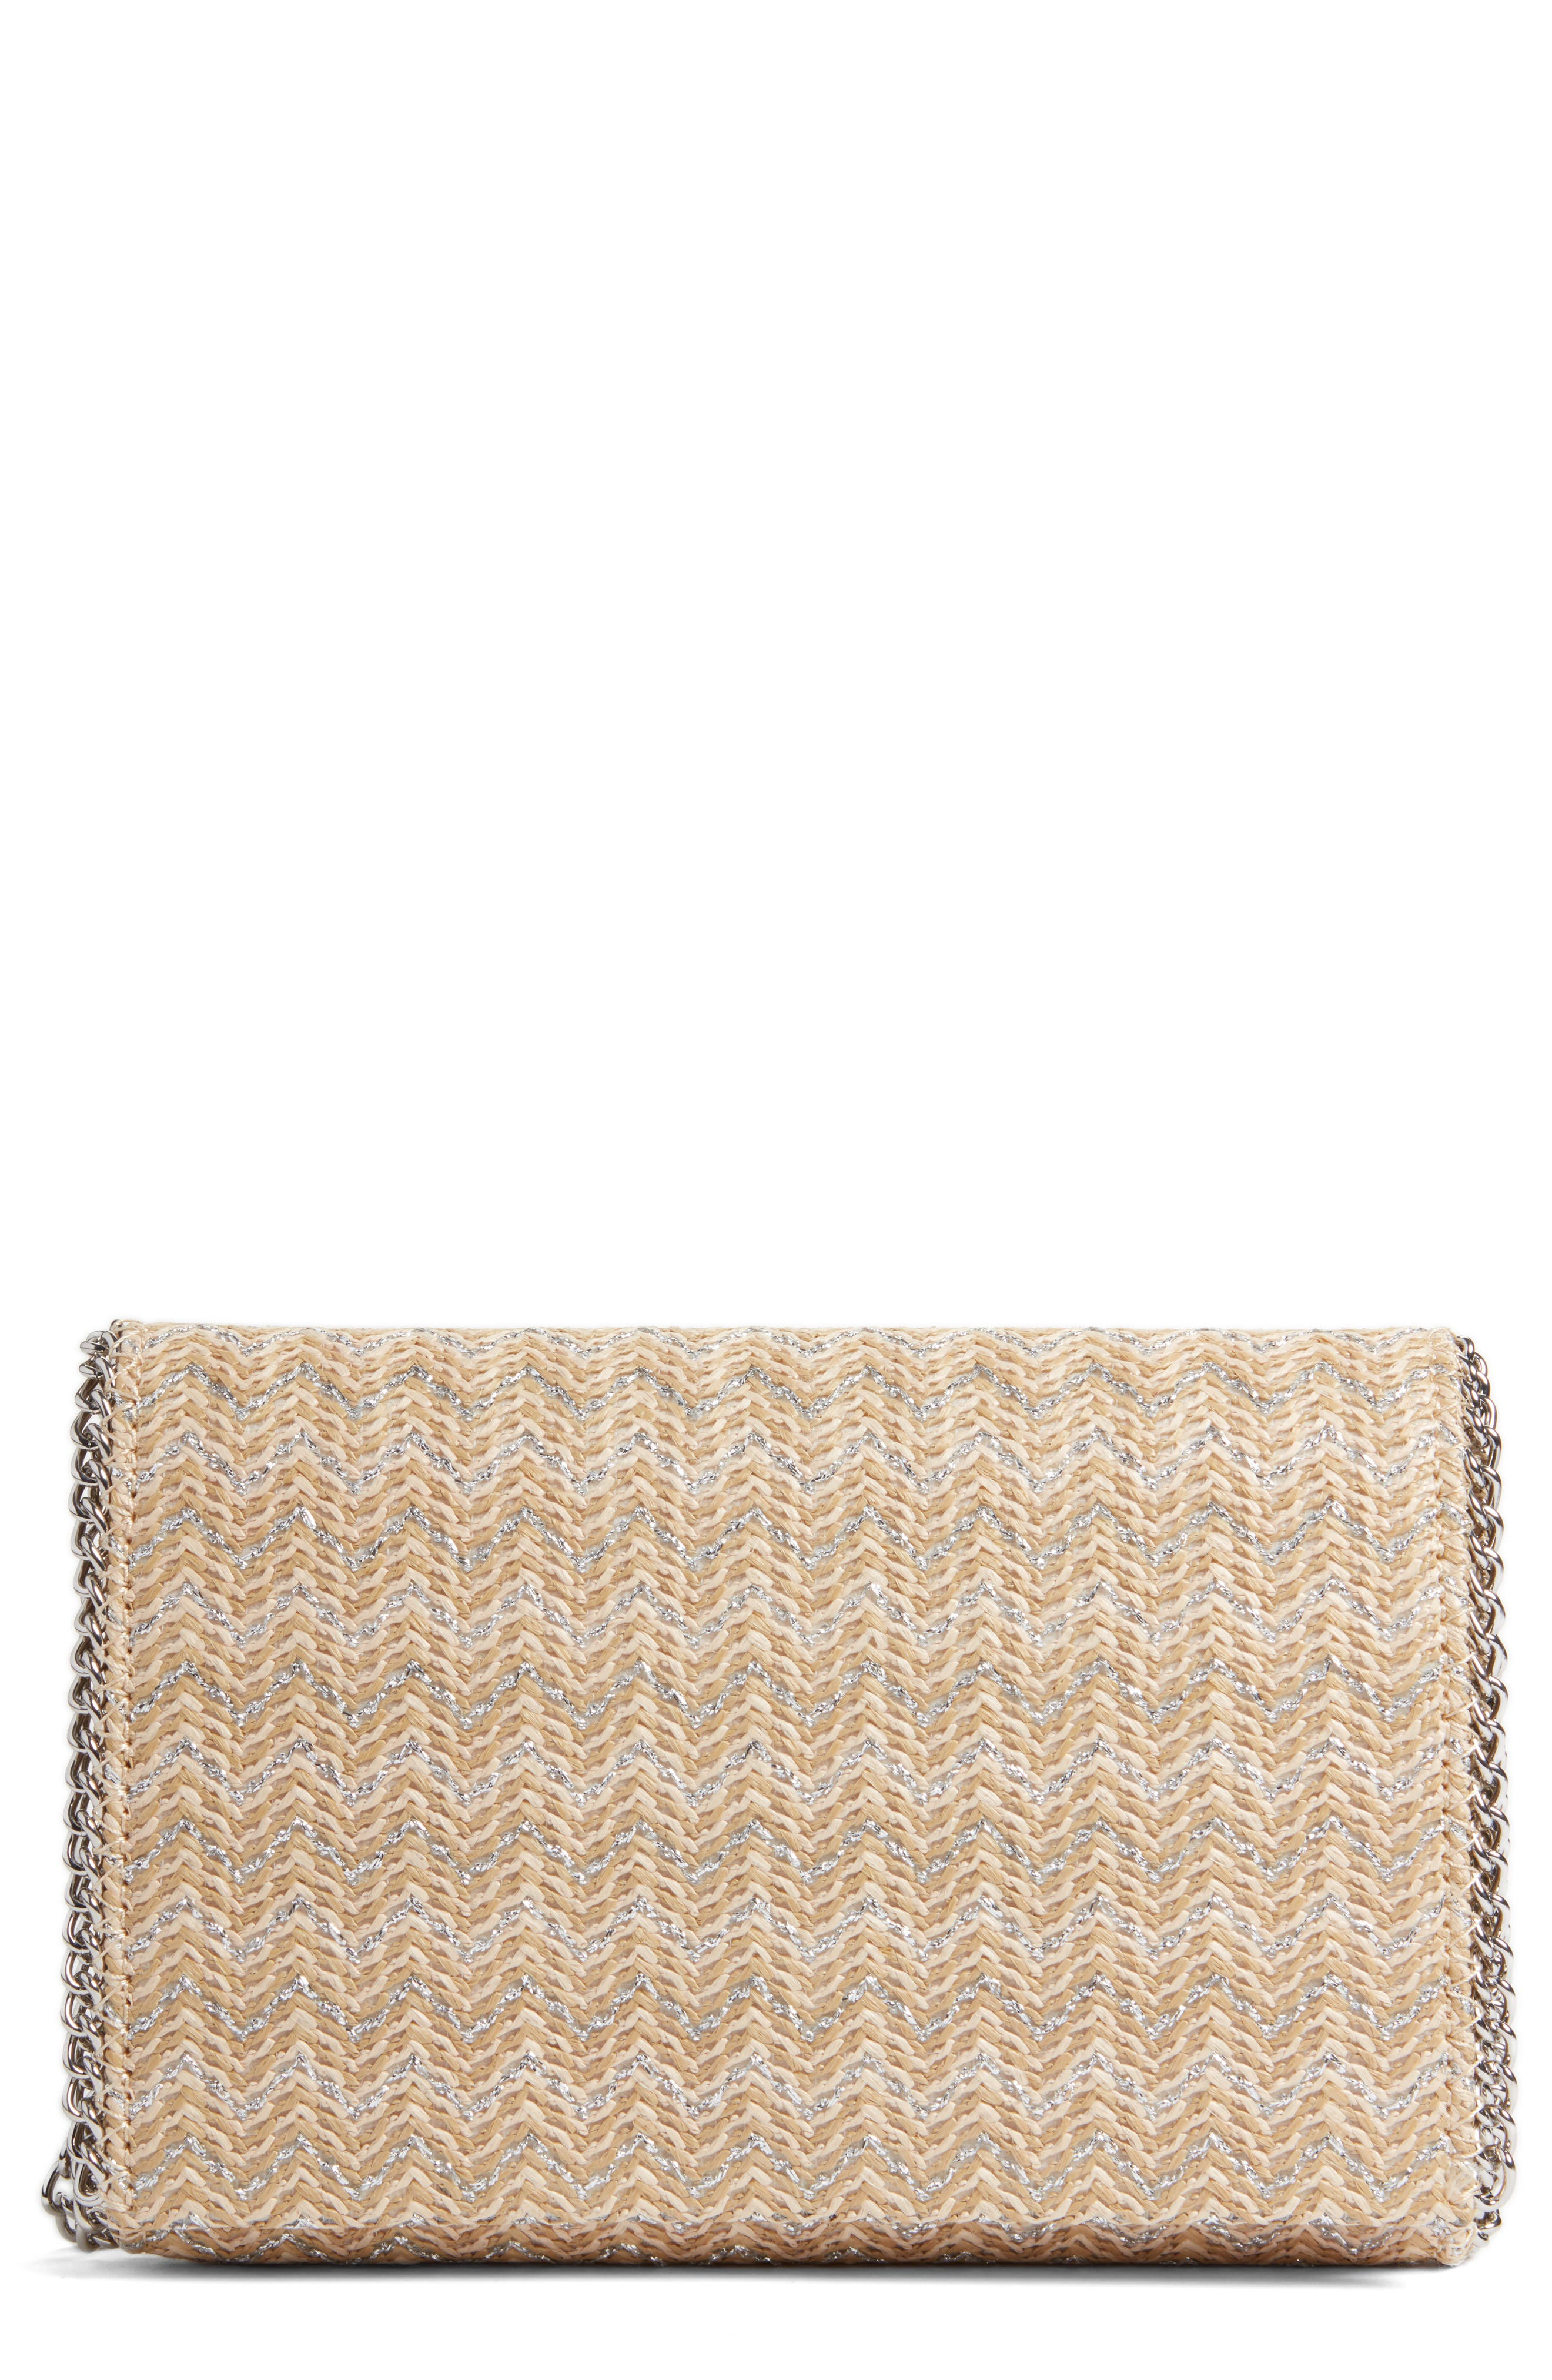 Stripe Straw Convertible Clutch,                             Main thumbnail 1, color,                             040